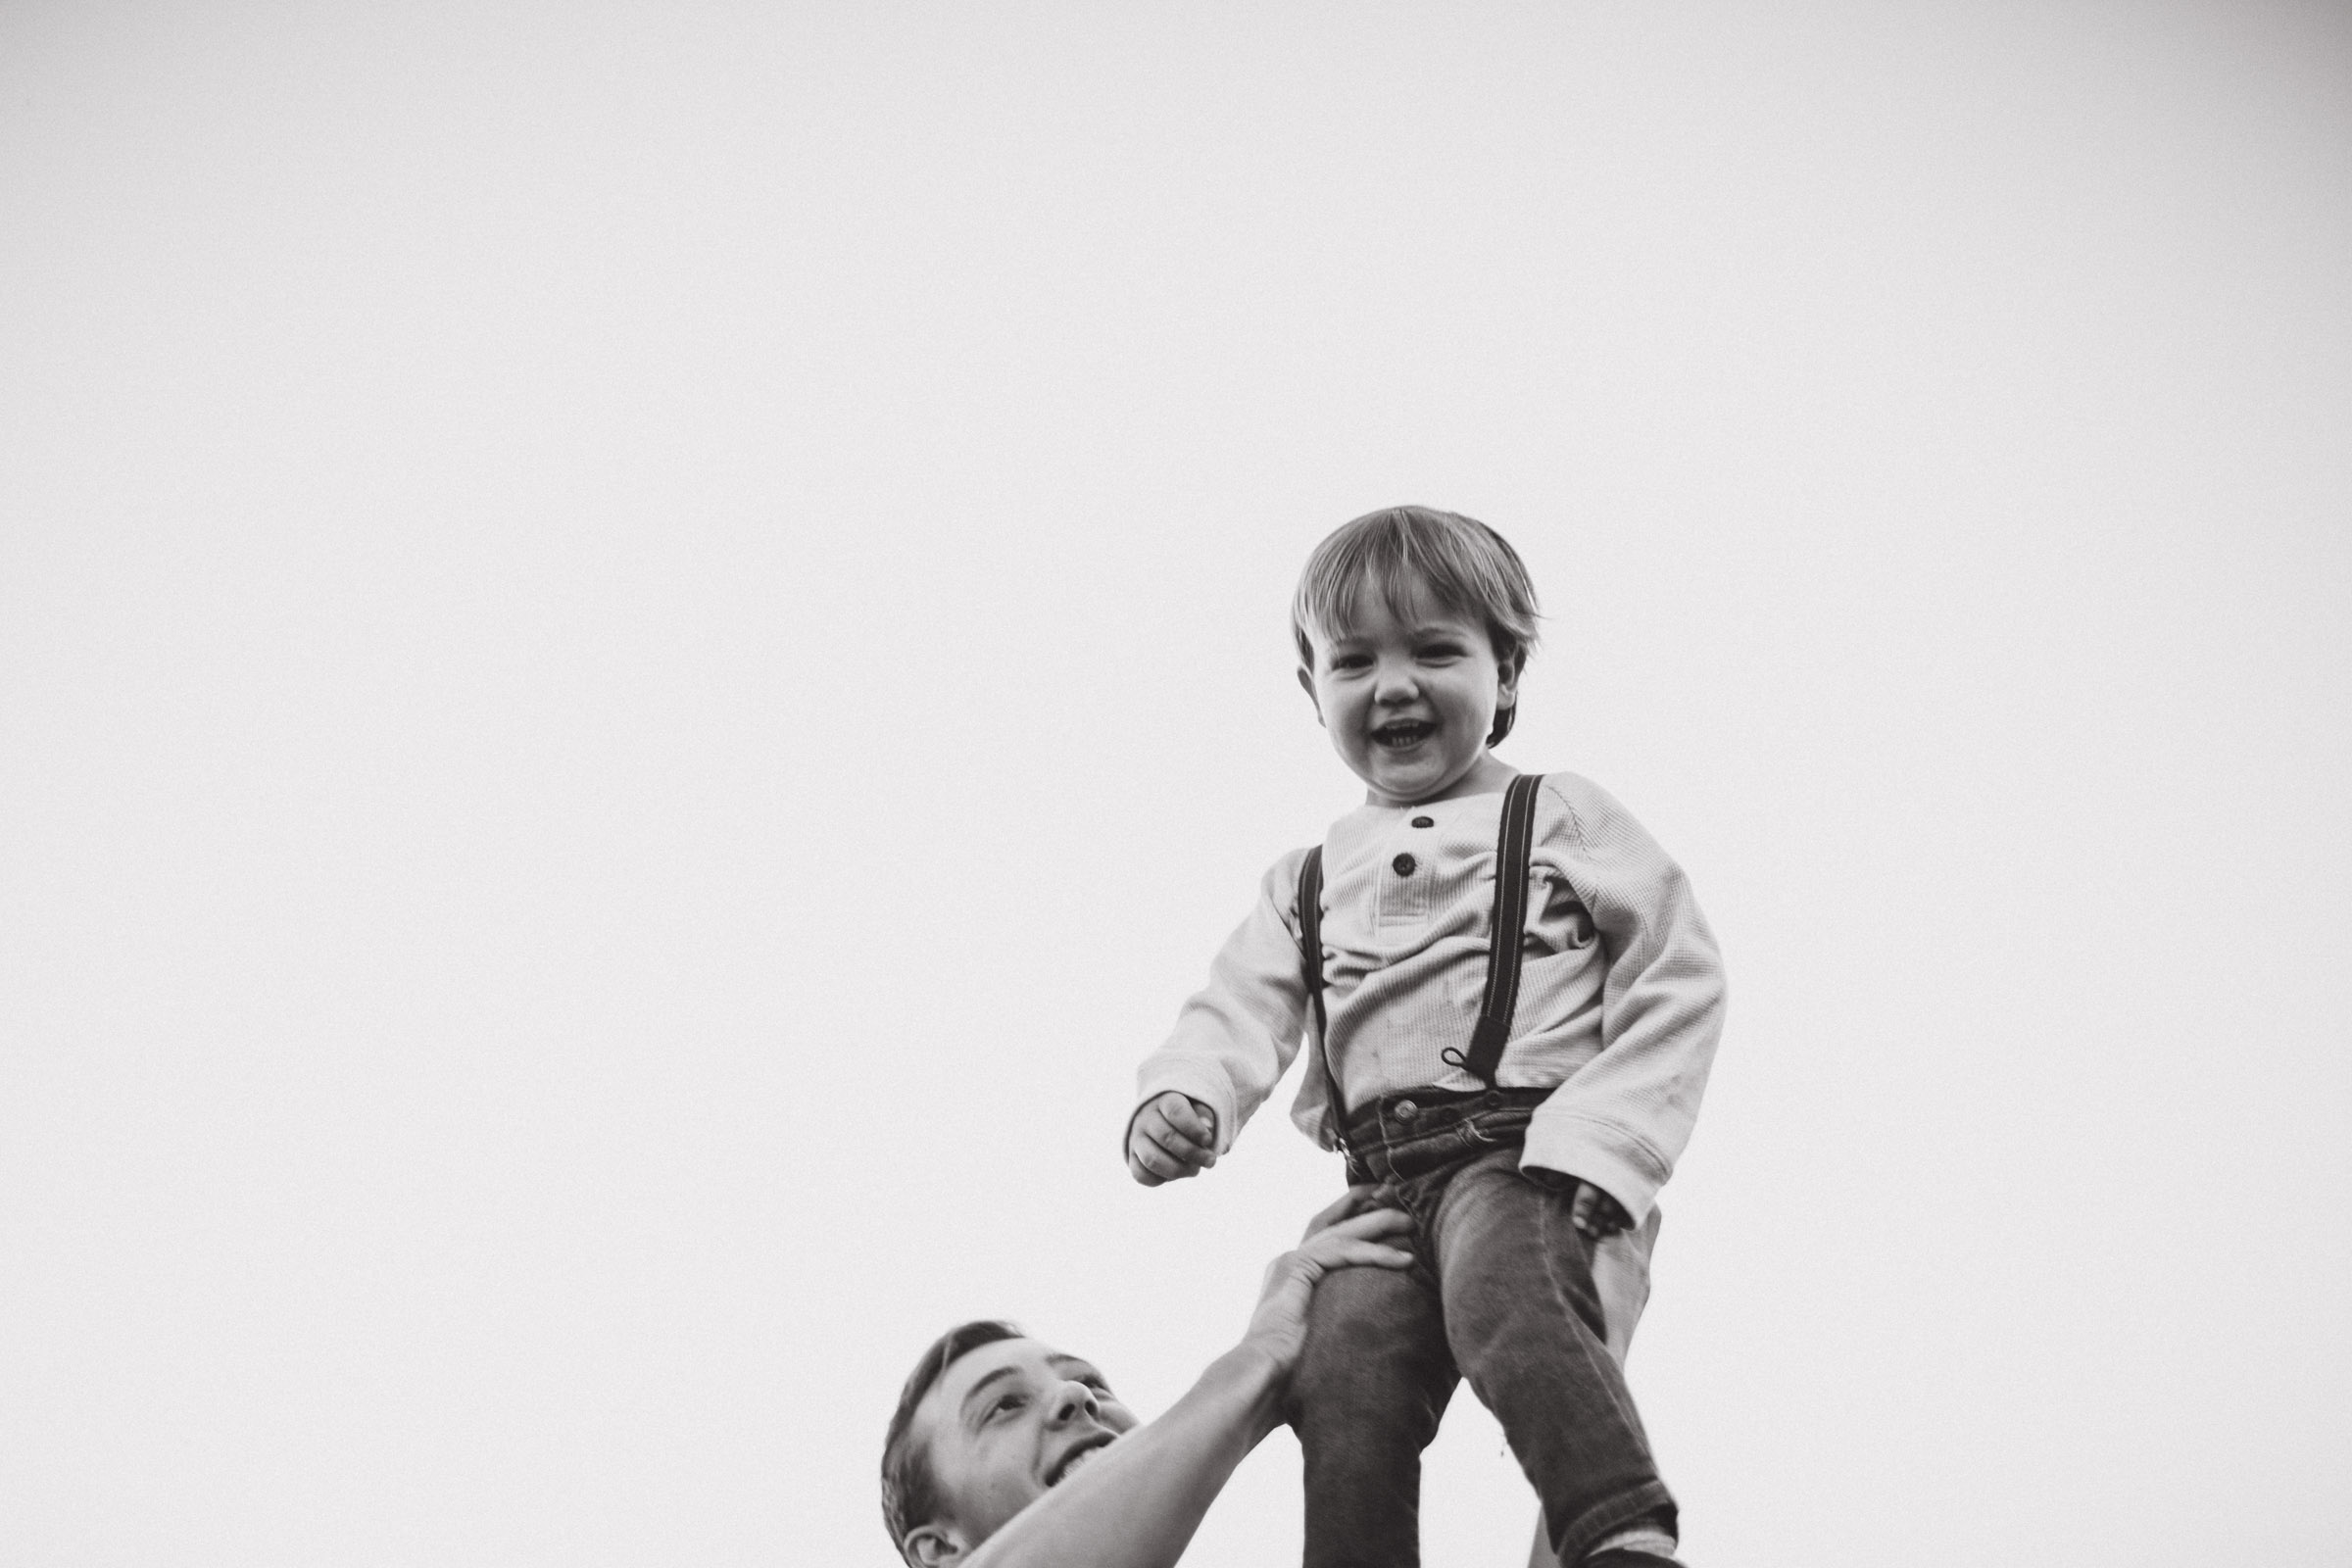 baby being held up in air by older brother